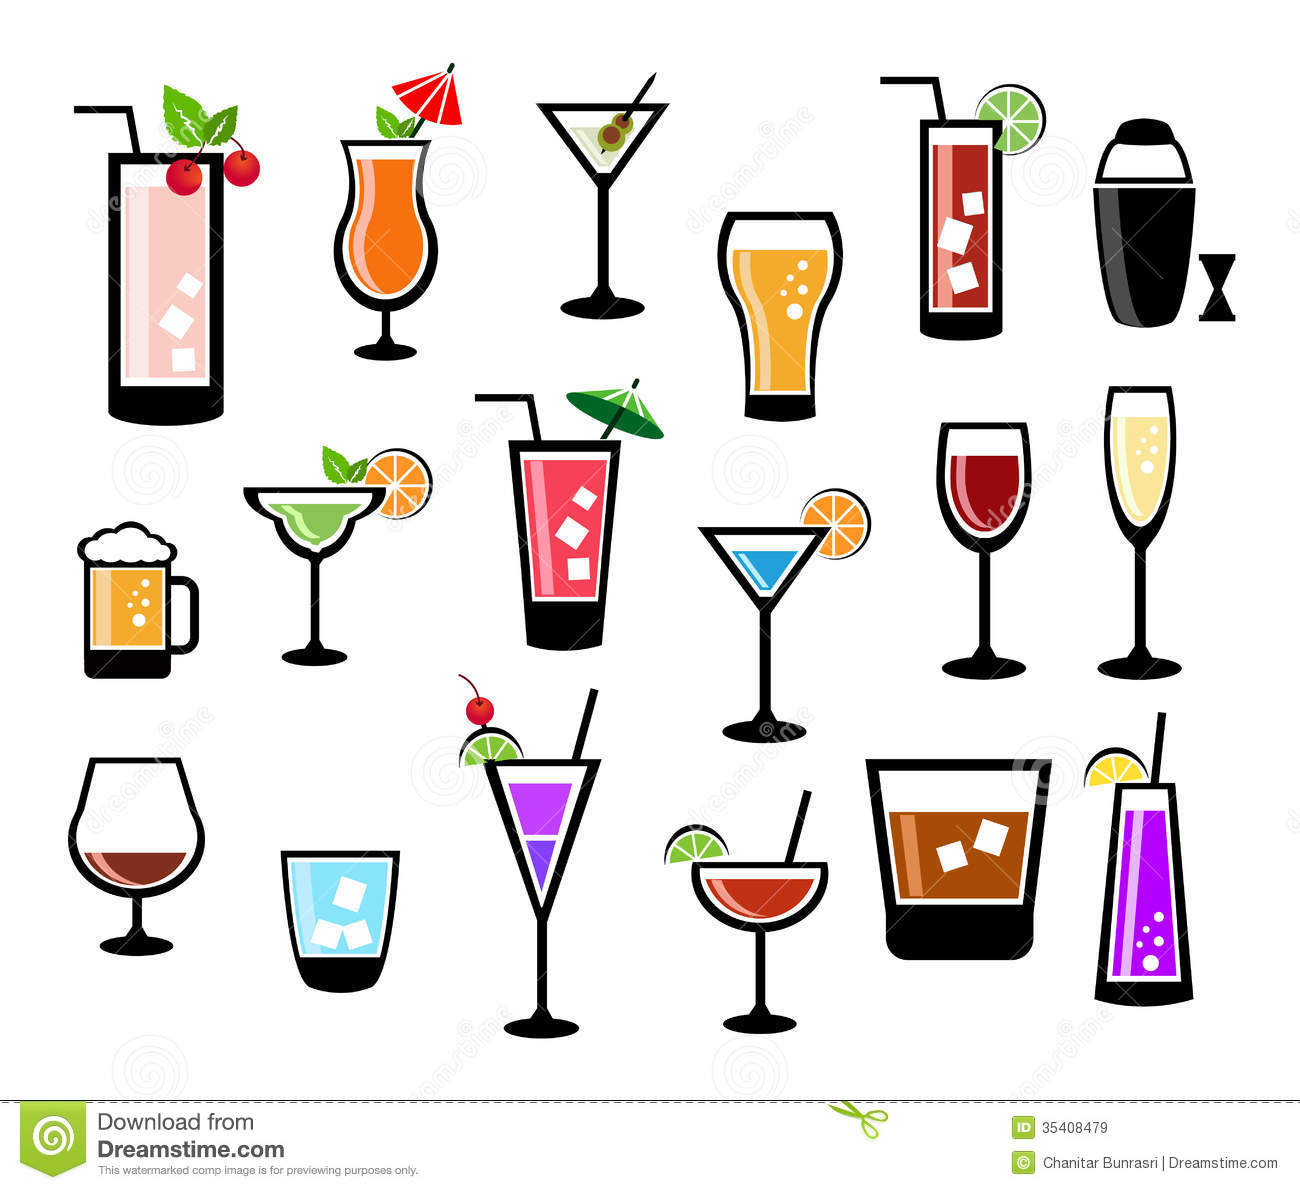 cocktail icon set royalty free stock images image 35408479 Popcorn Clip Art Popcorn Clip Art